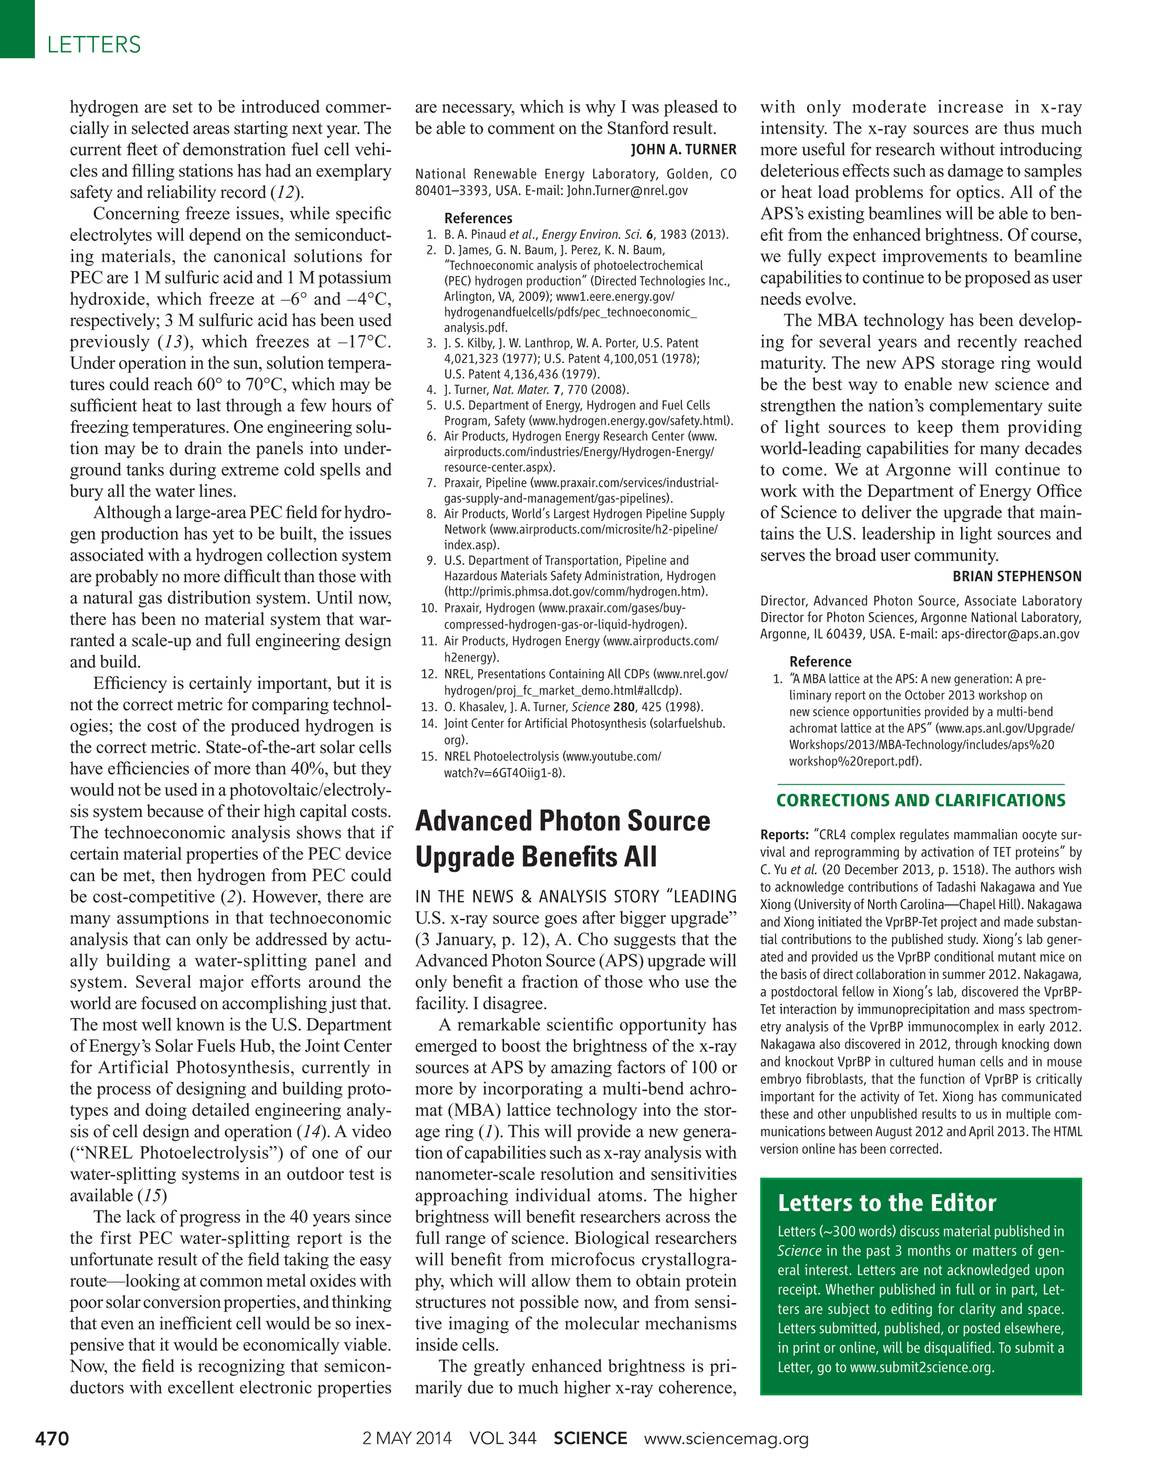 Science Magazine - 02 May 2014 - page 471